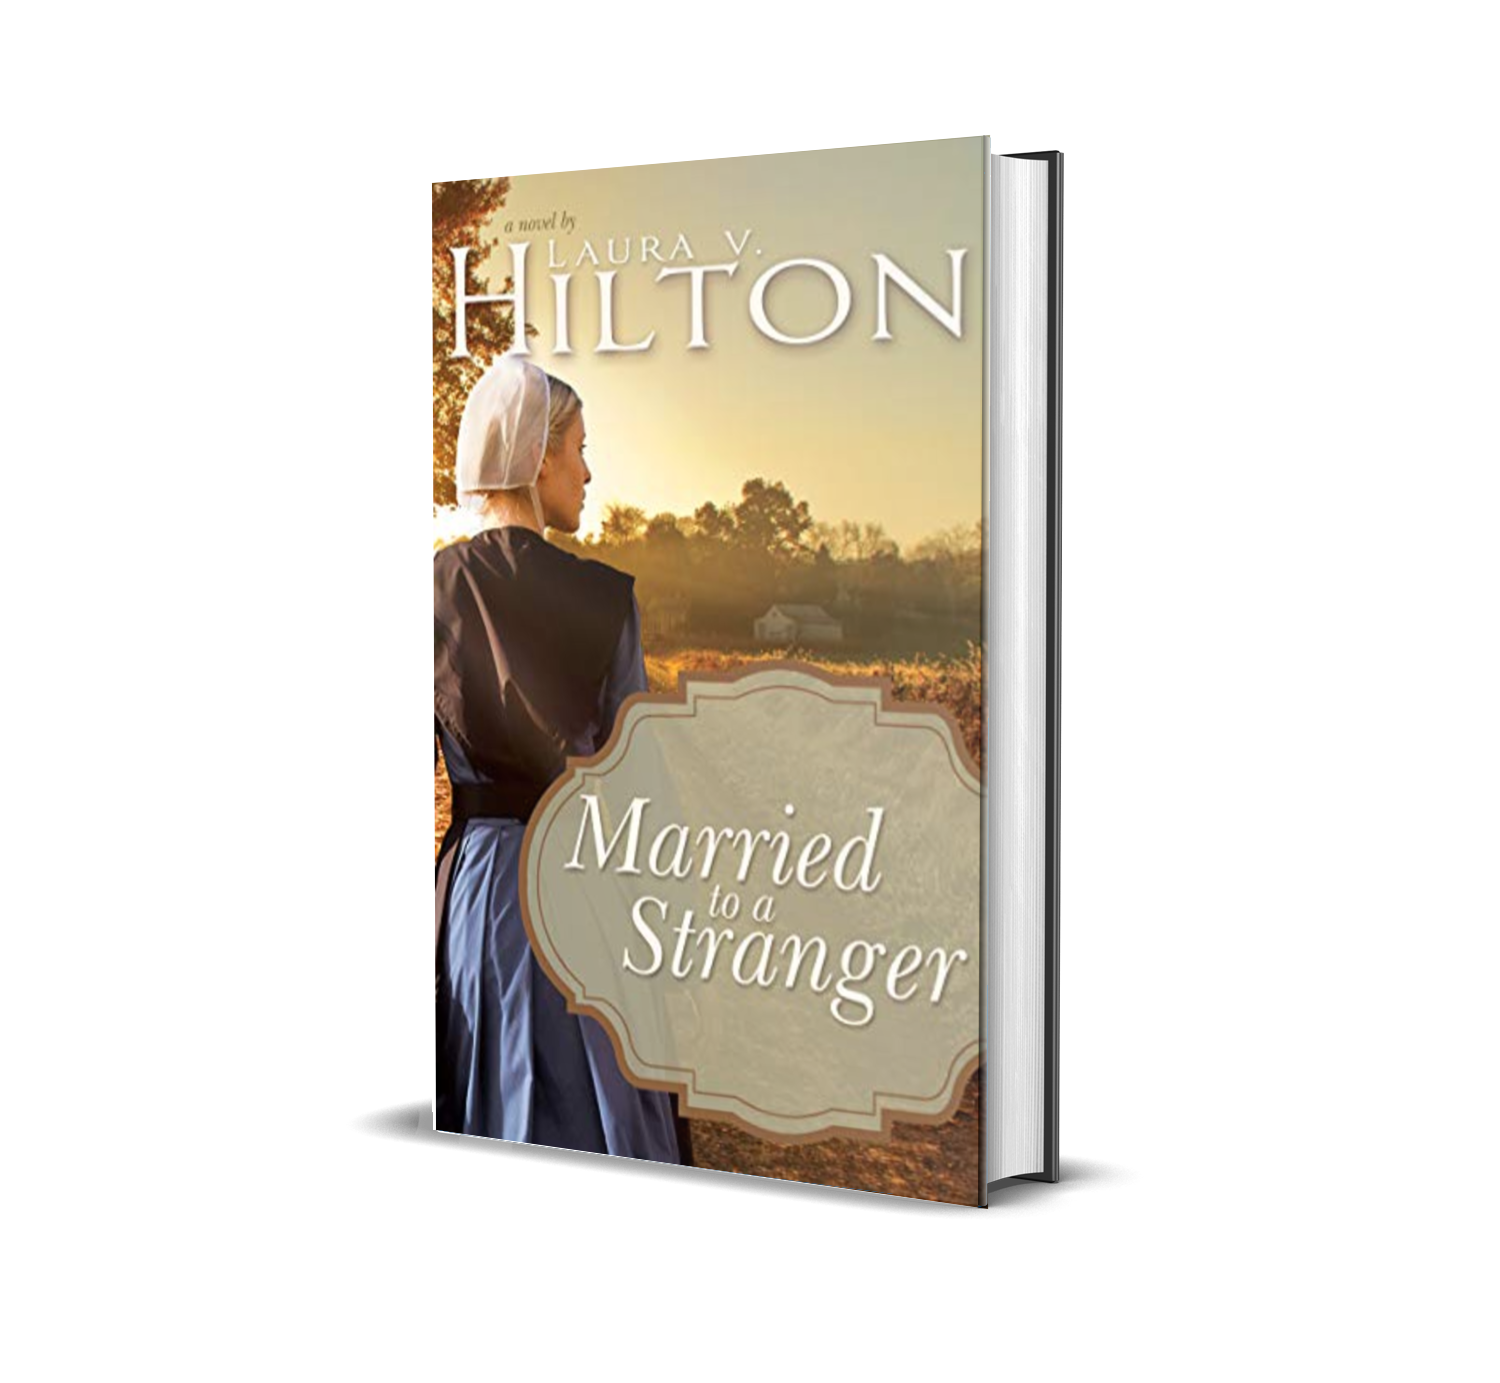 Married to a Stranger by Laura V. Hilton